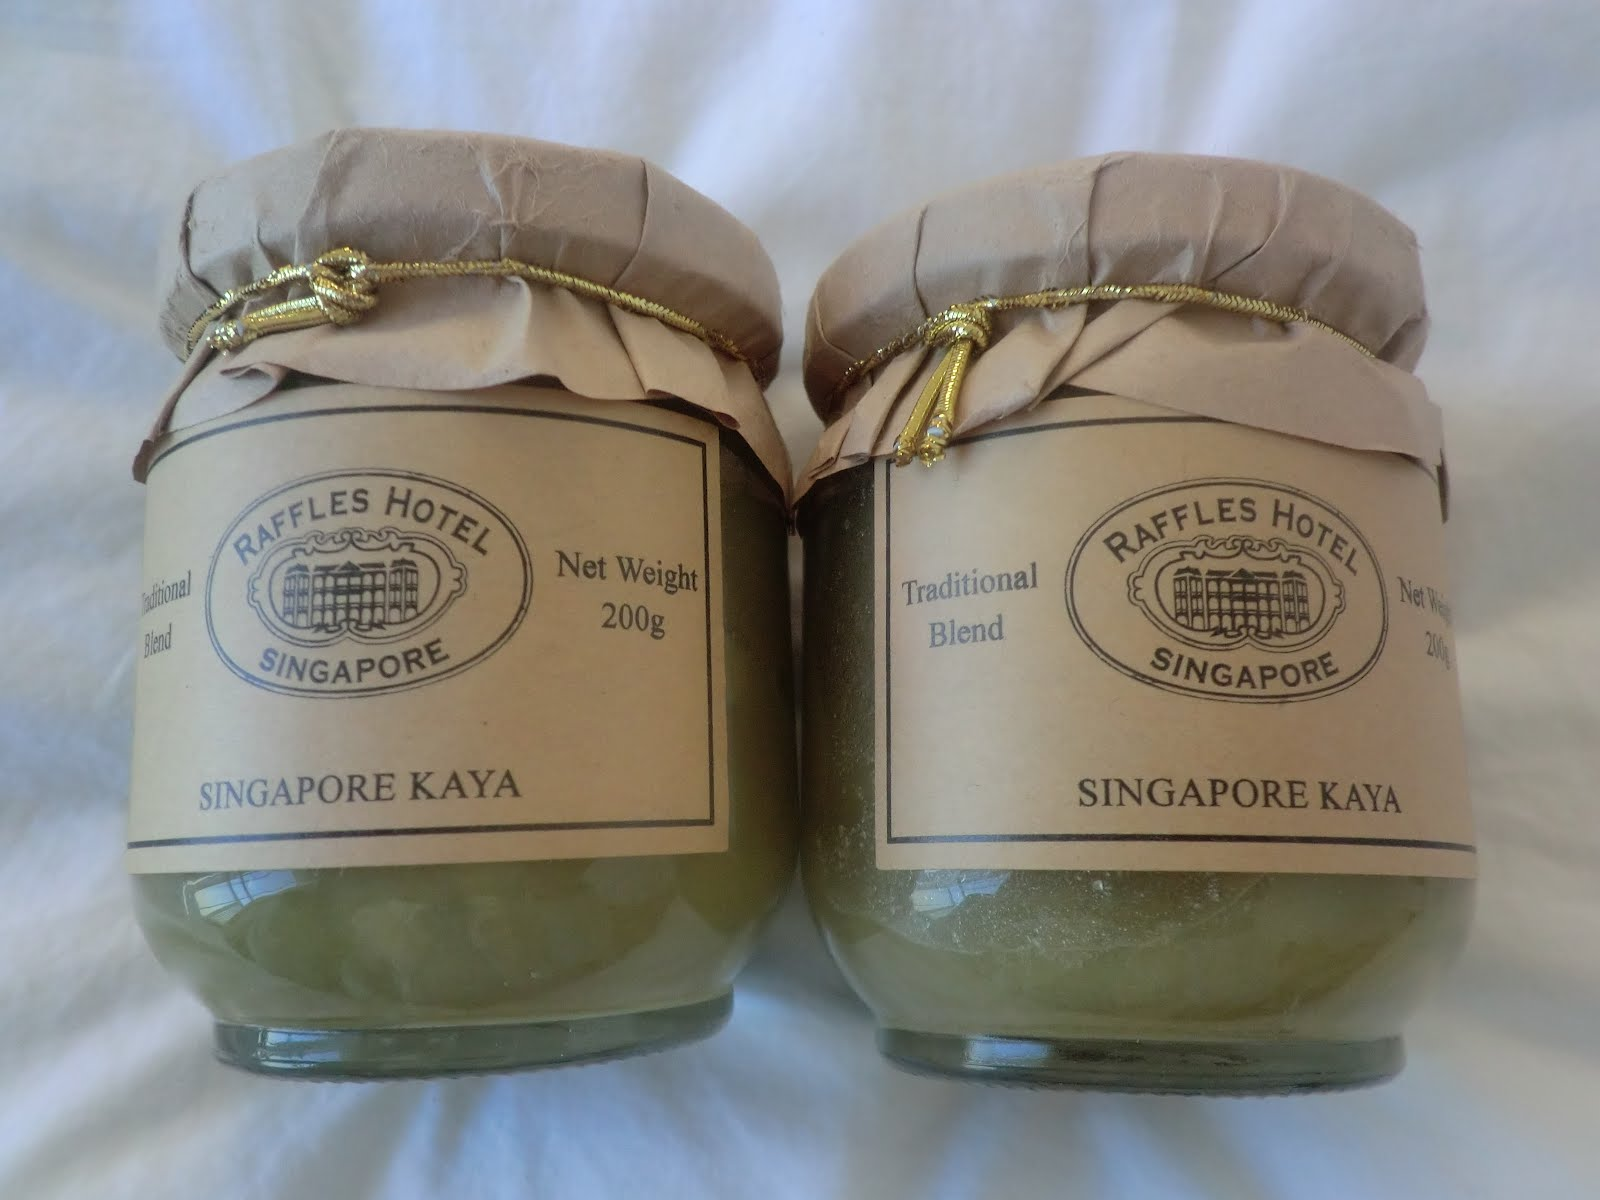 From Japan Souvenirs From Raffles Hotel Singapore